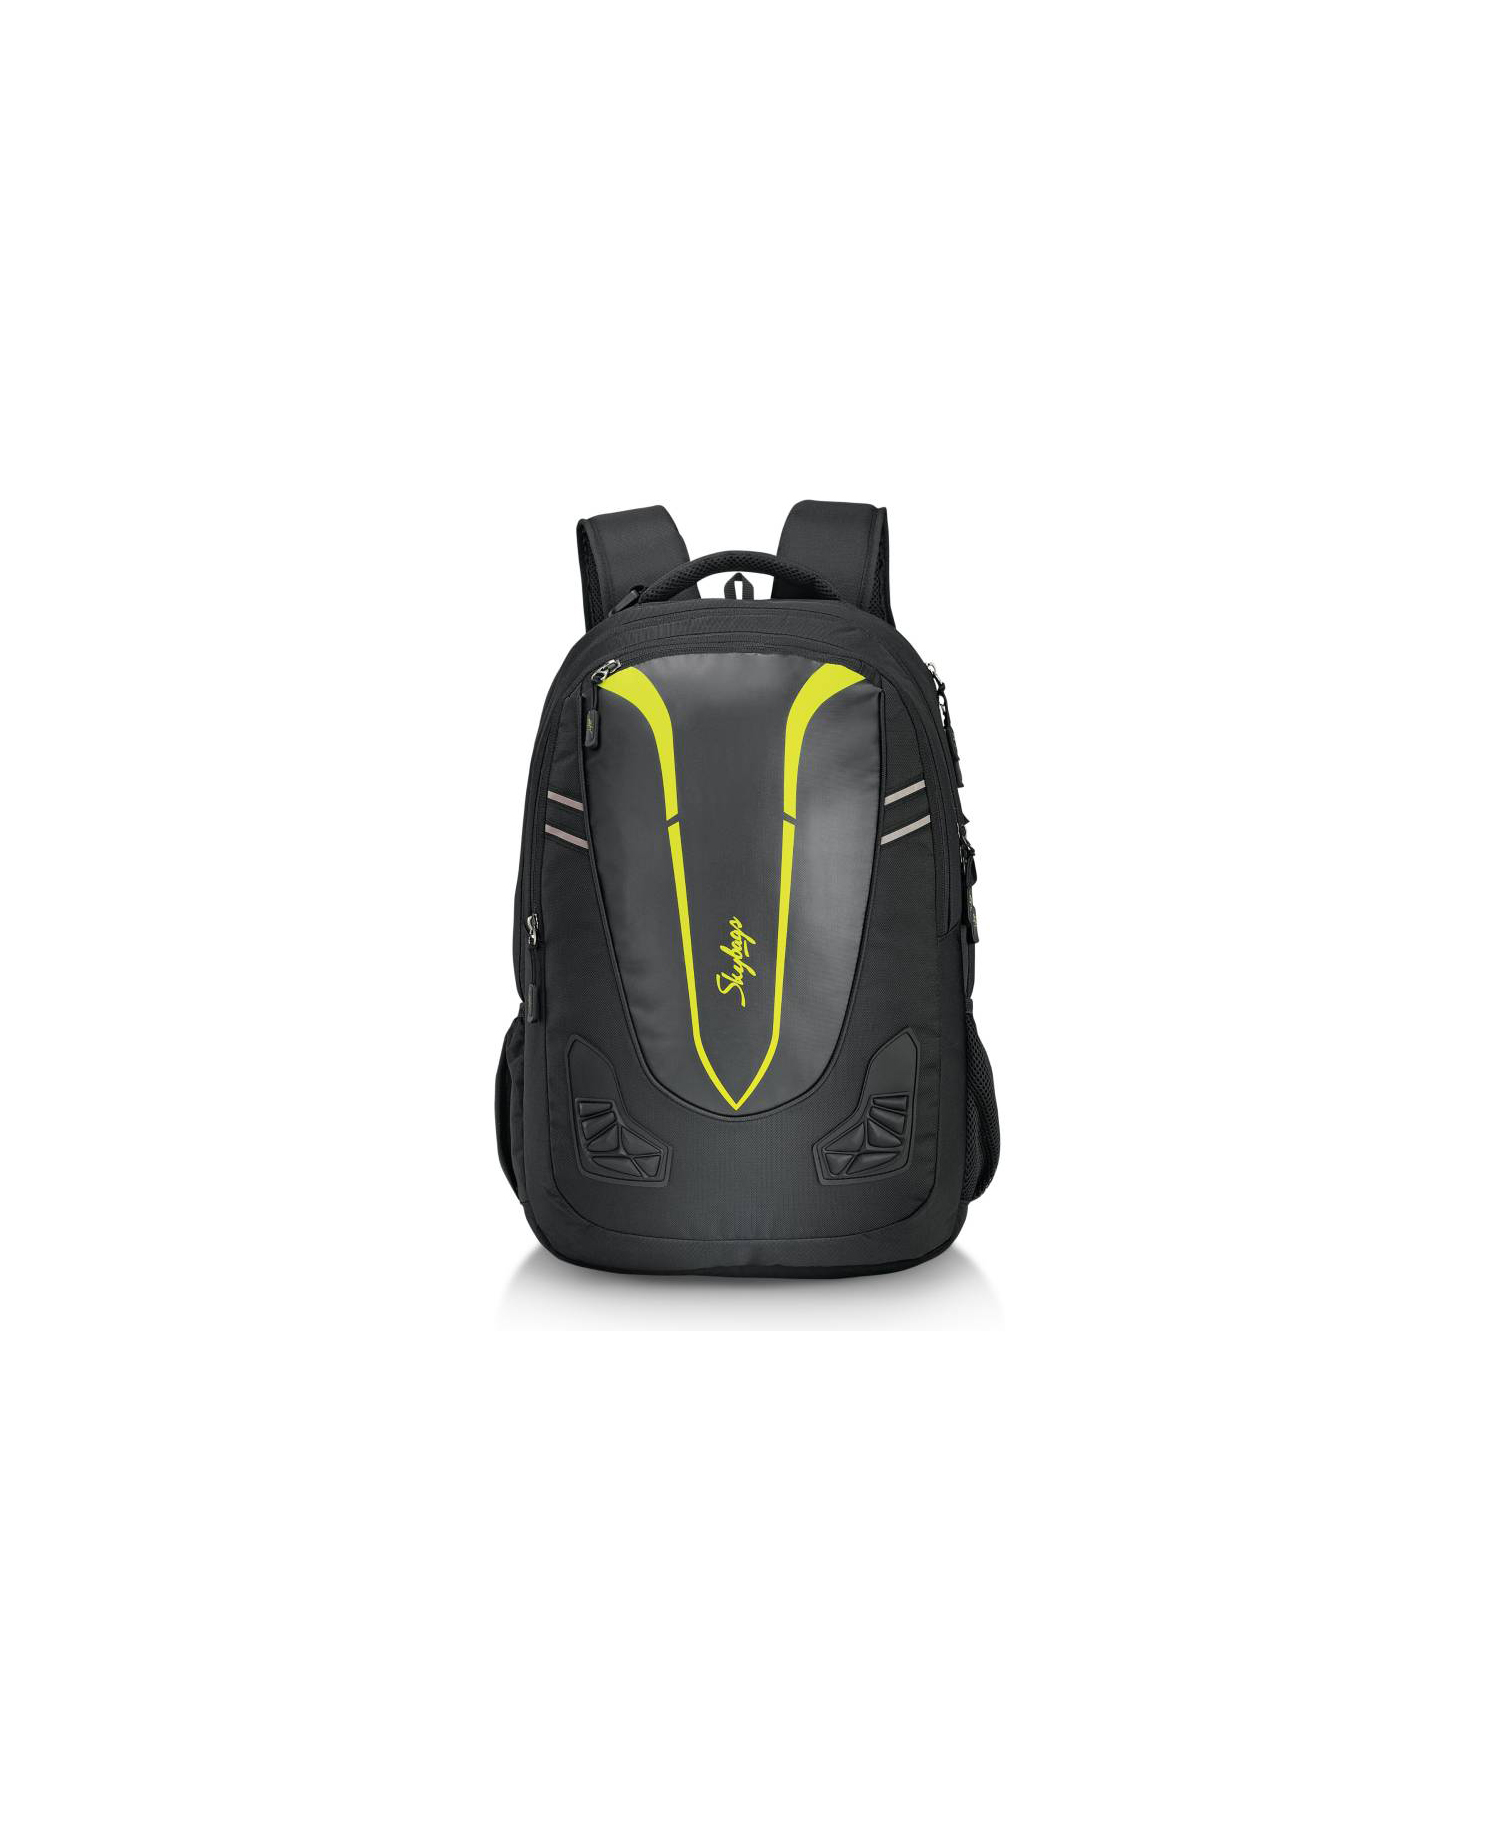 Skybags Crew 5 Laptop Backpack Black 32 L Laptop Backpack (Black) c20f55cbc4d3b